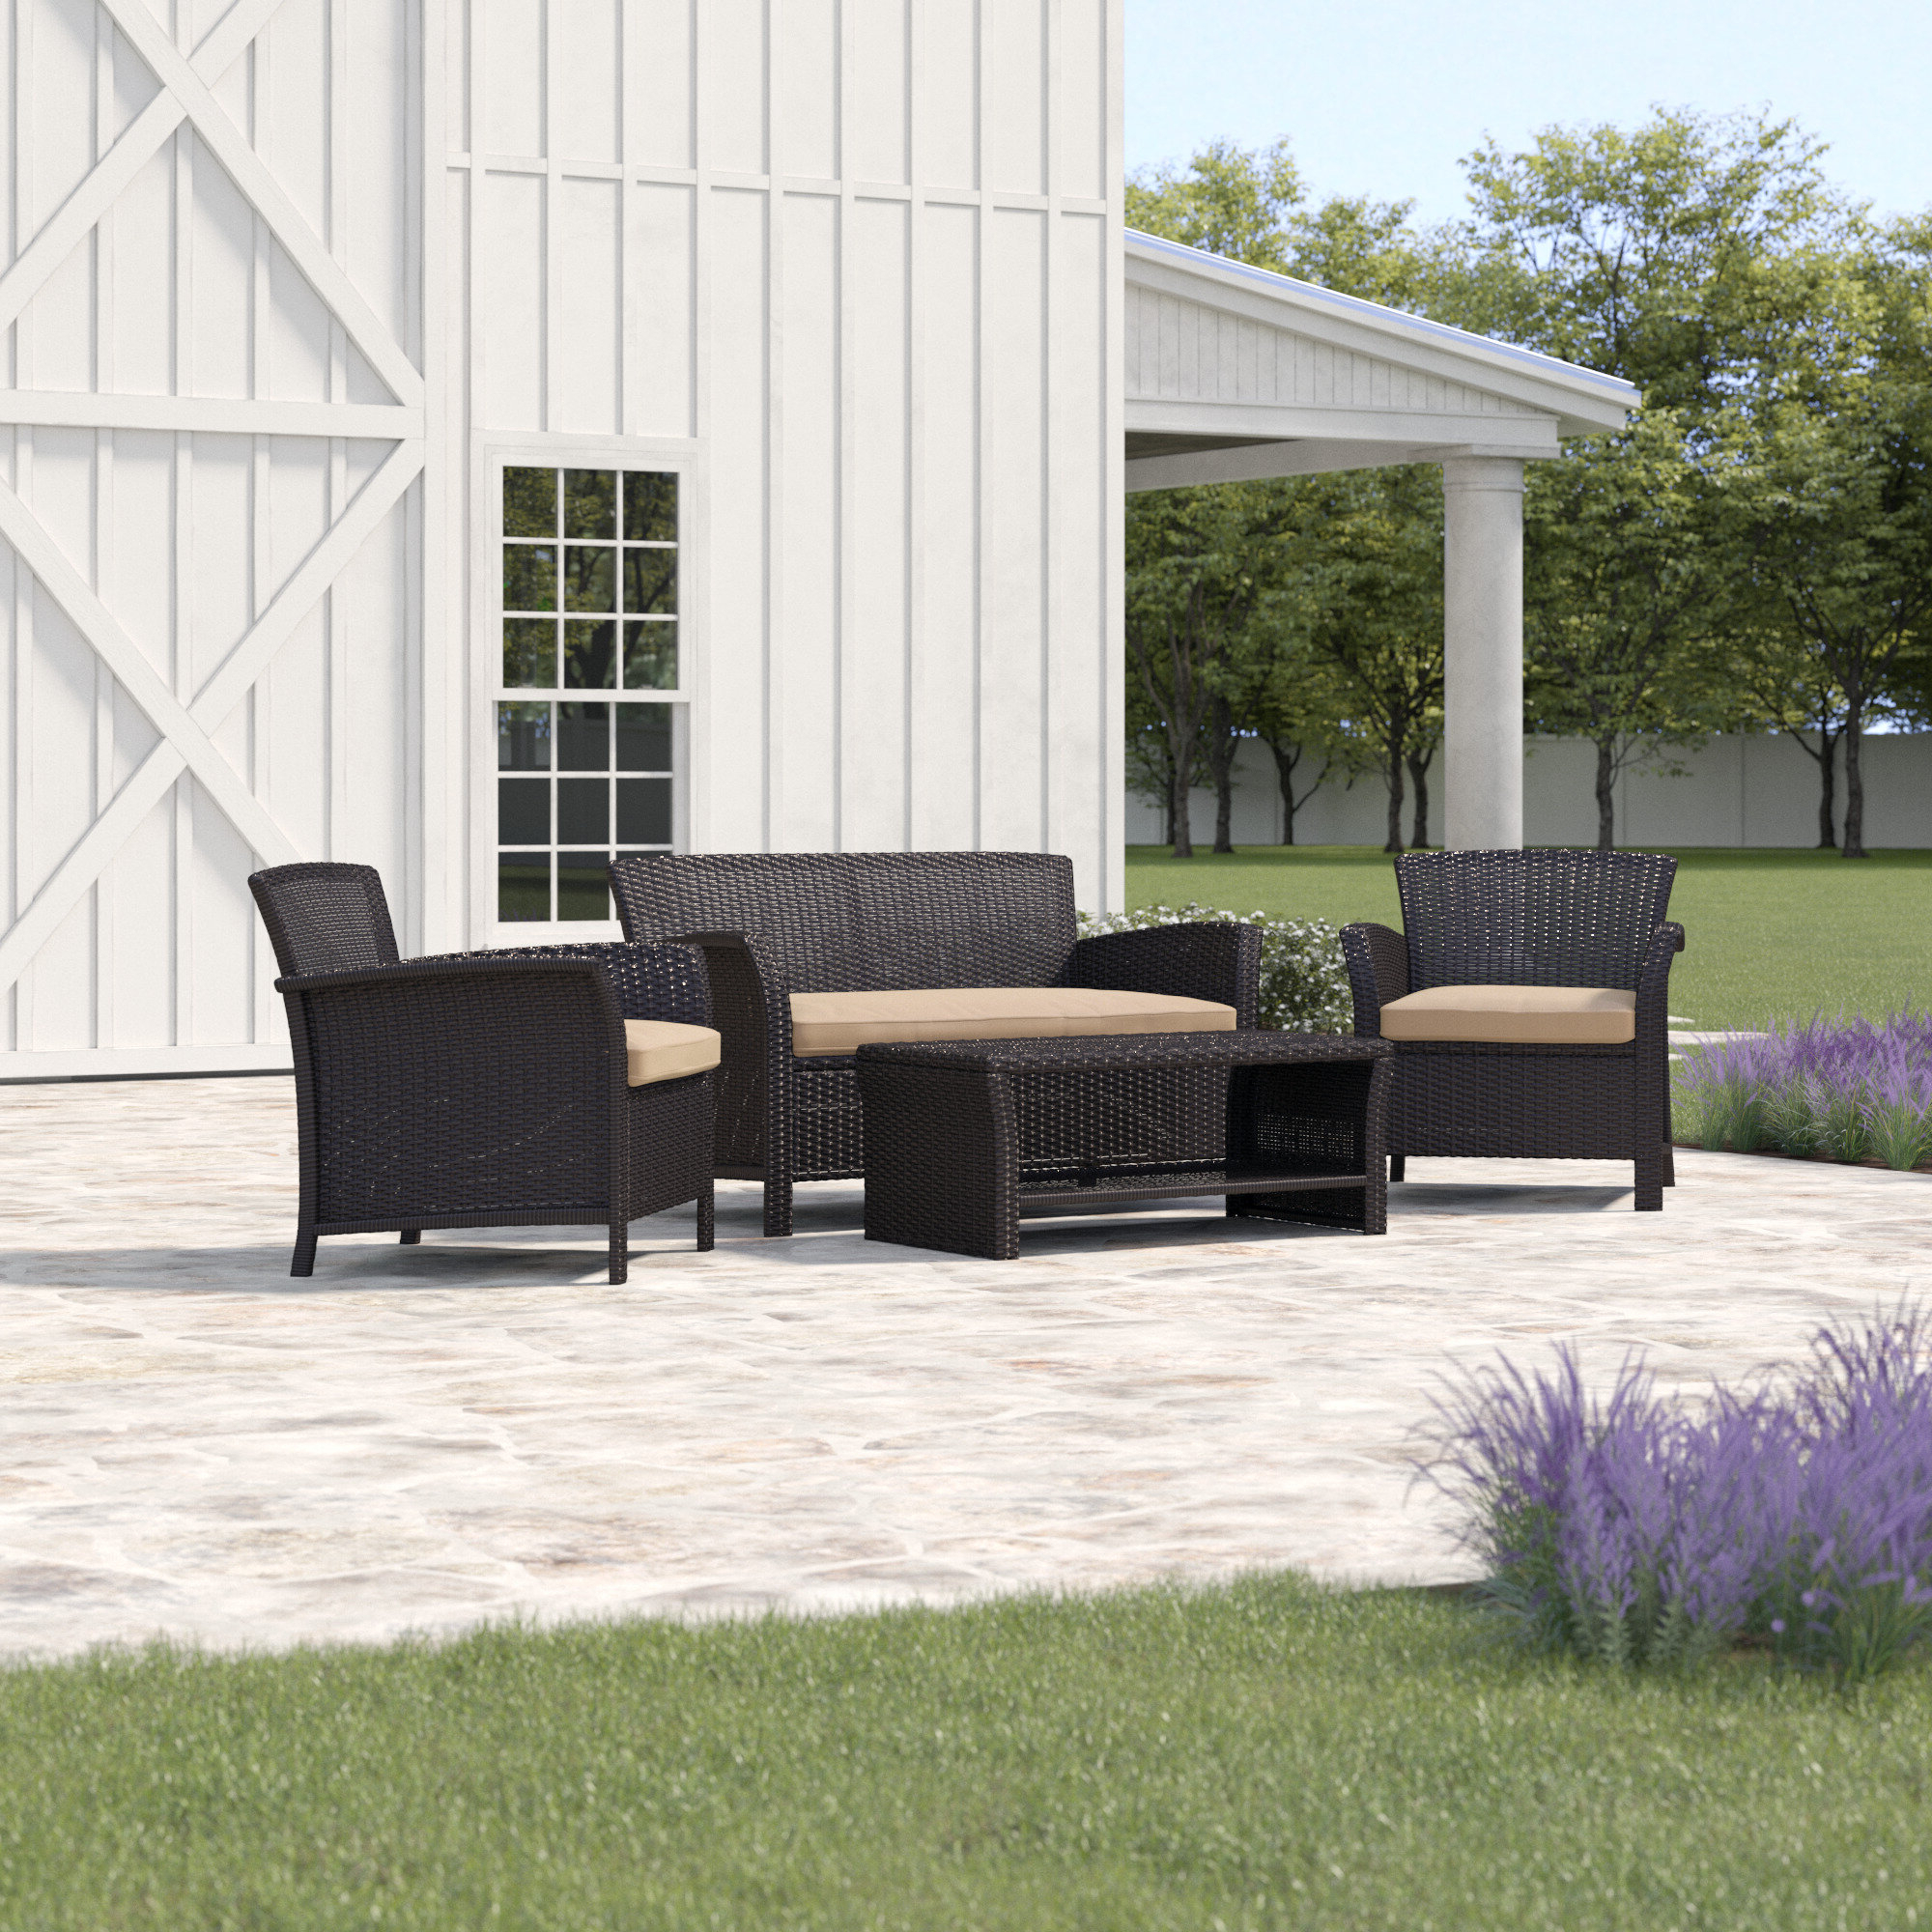 Livingston 4 Piece Rattan Sofa Seating Group With Cushions With Regard To Most Current Carina 4 Piece Sectionals Seating Group With Cushions (Gallery 23 of 25)